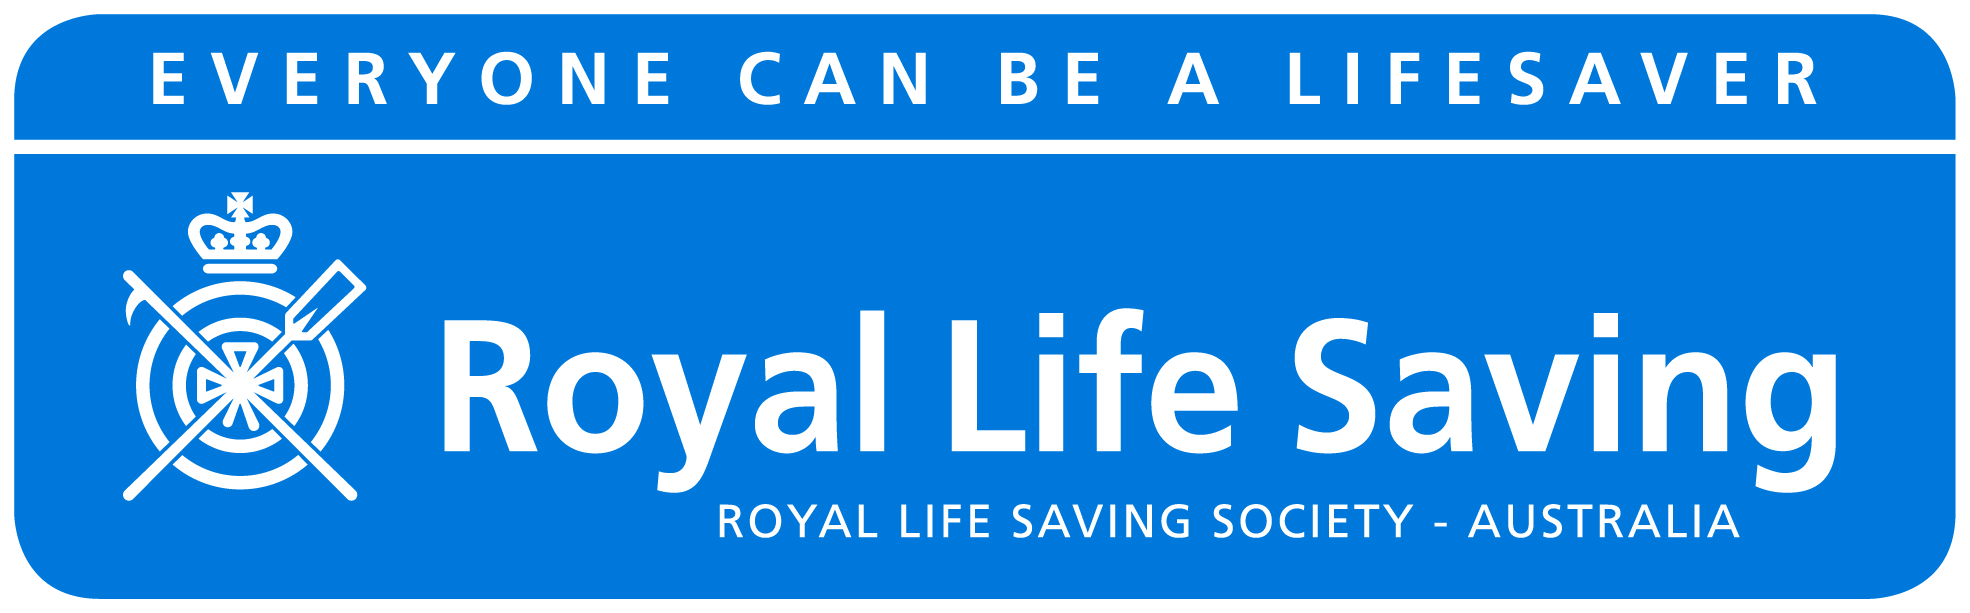 Royal Life Saving Society Australia logo